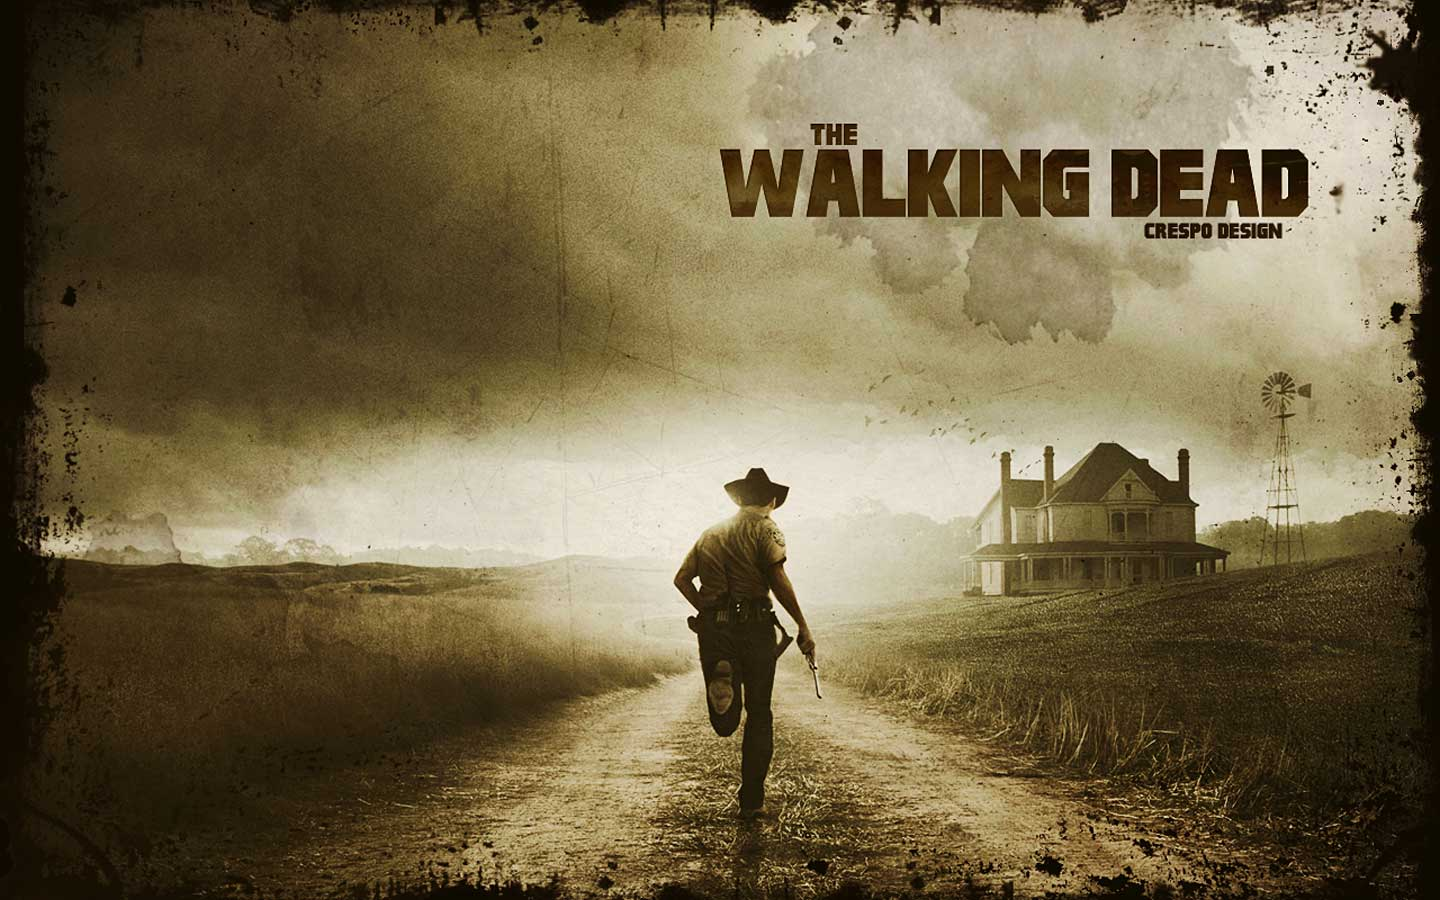 Free Download The Walking Dead Wallpapers Hd 1440x900 For Your